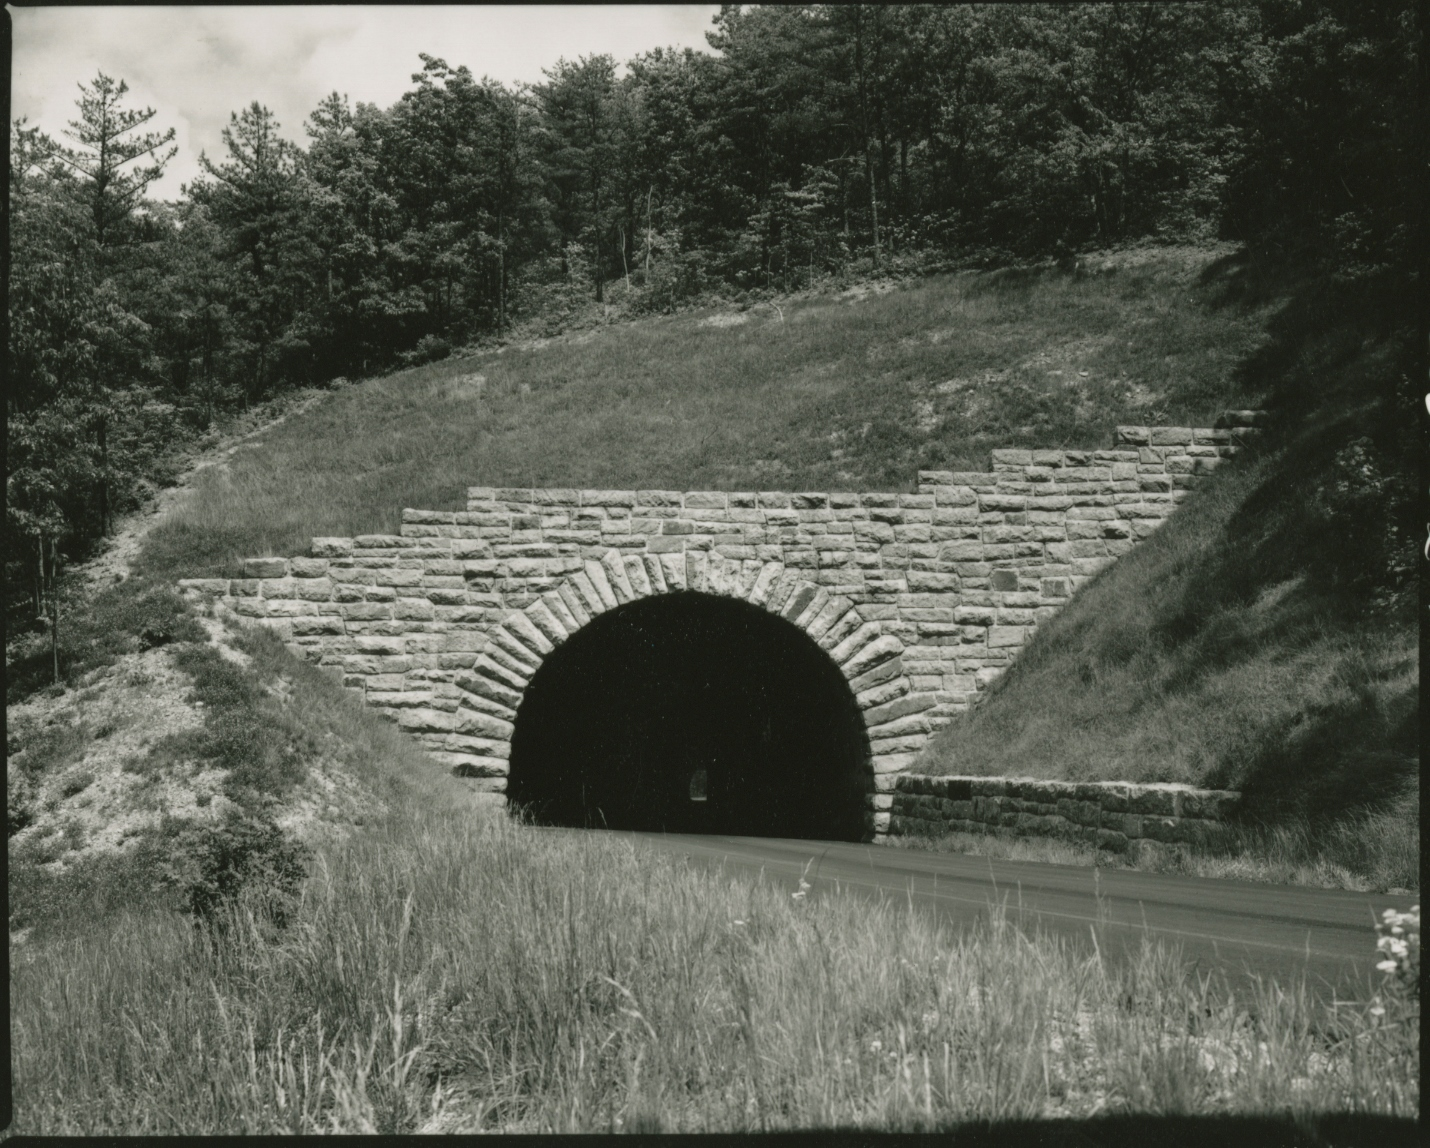 Tunnels Blue Ridge Parkway U S National Park Service